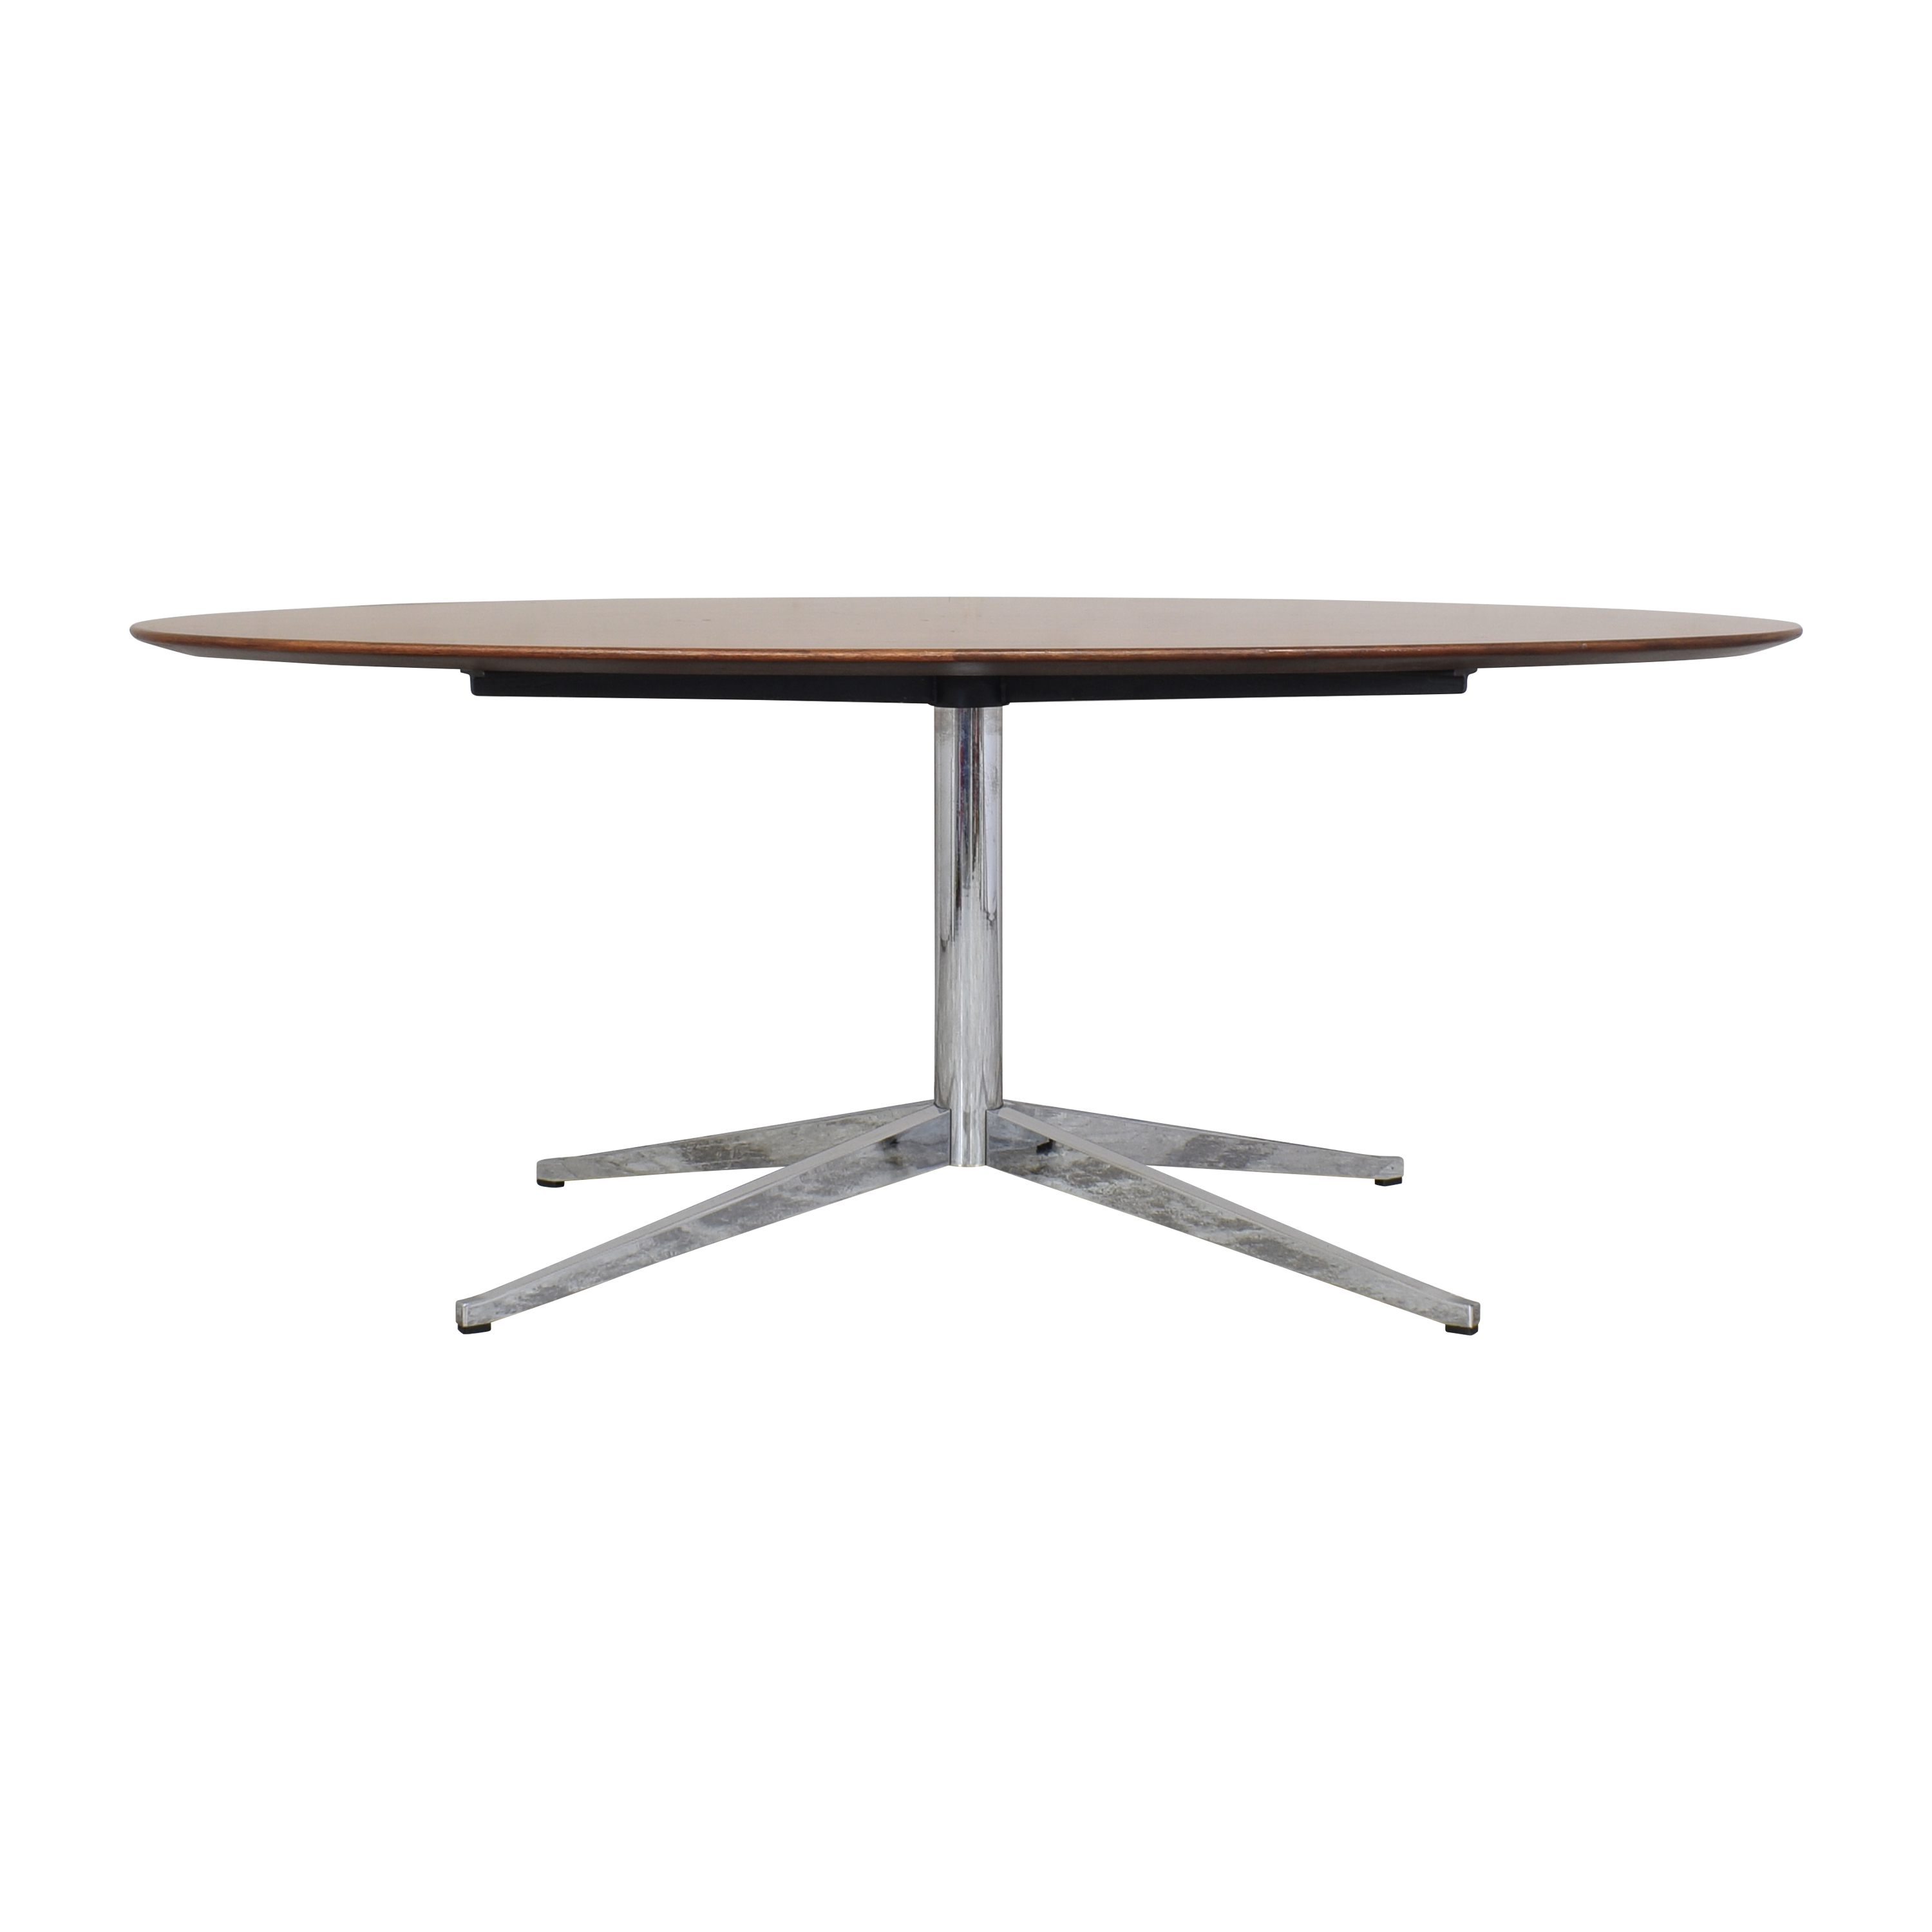 Knoll Florence Knoll Oval Table Desk for sale